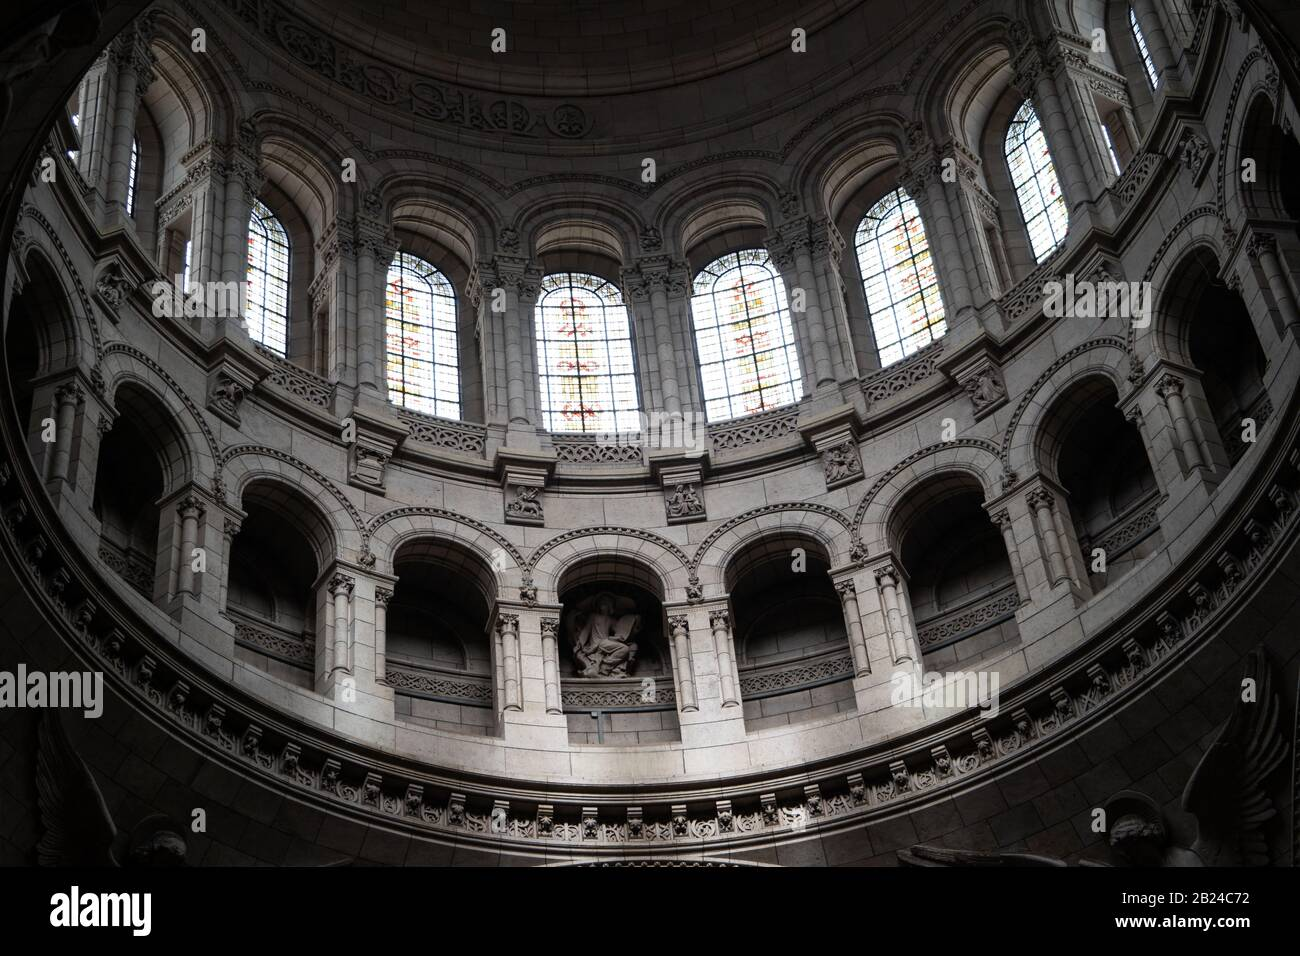 View inside the main dome of Basilica of the Sacred Heart of Paris (Sacre-Coeur), Paris, France Stock Photo